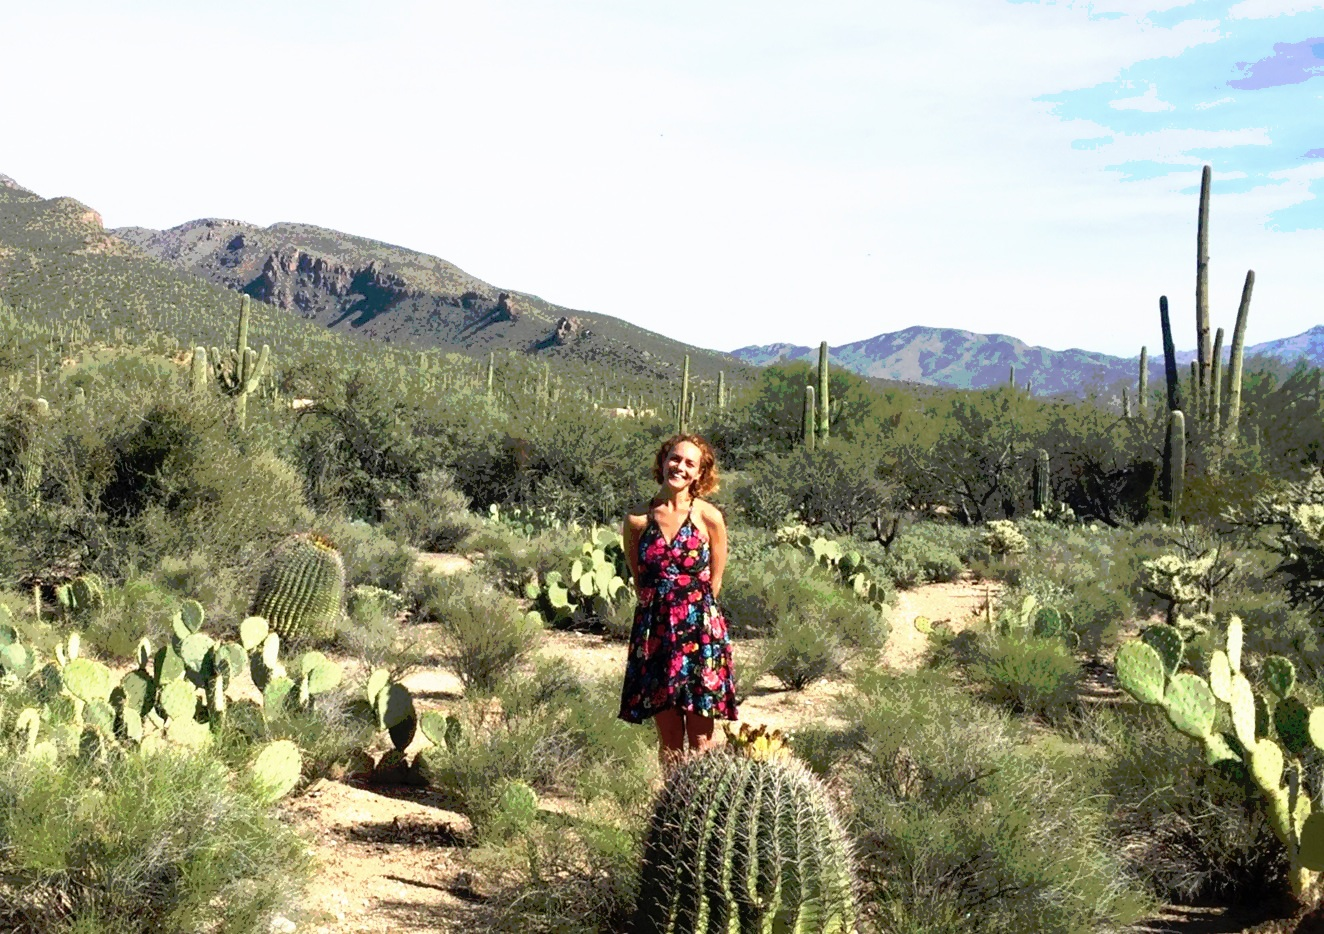 her happy place - Amongst the green ones in the warm sunshine of the southwest.Courtney Visits the Arizona Desert several times each year to harvest plant medicine, to study, write, self-reflect, and to bask in the warm desert sun.